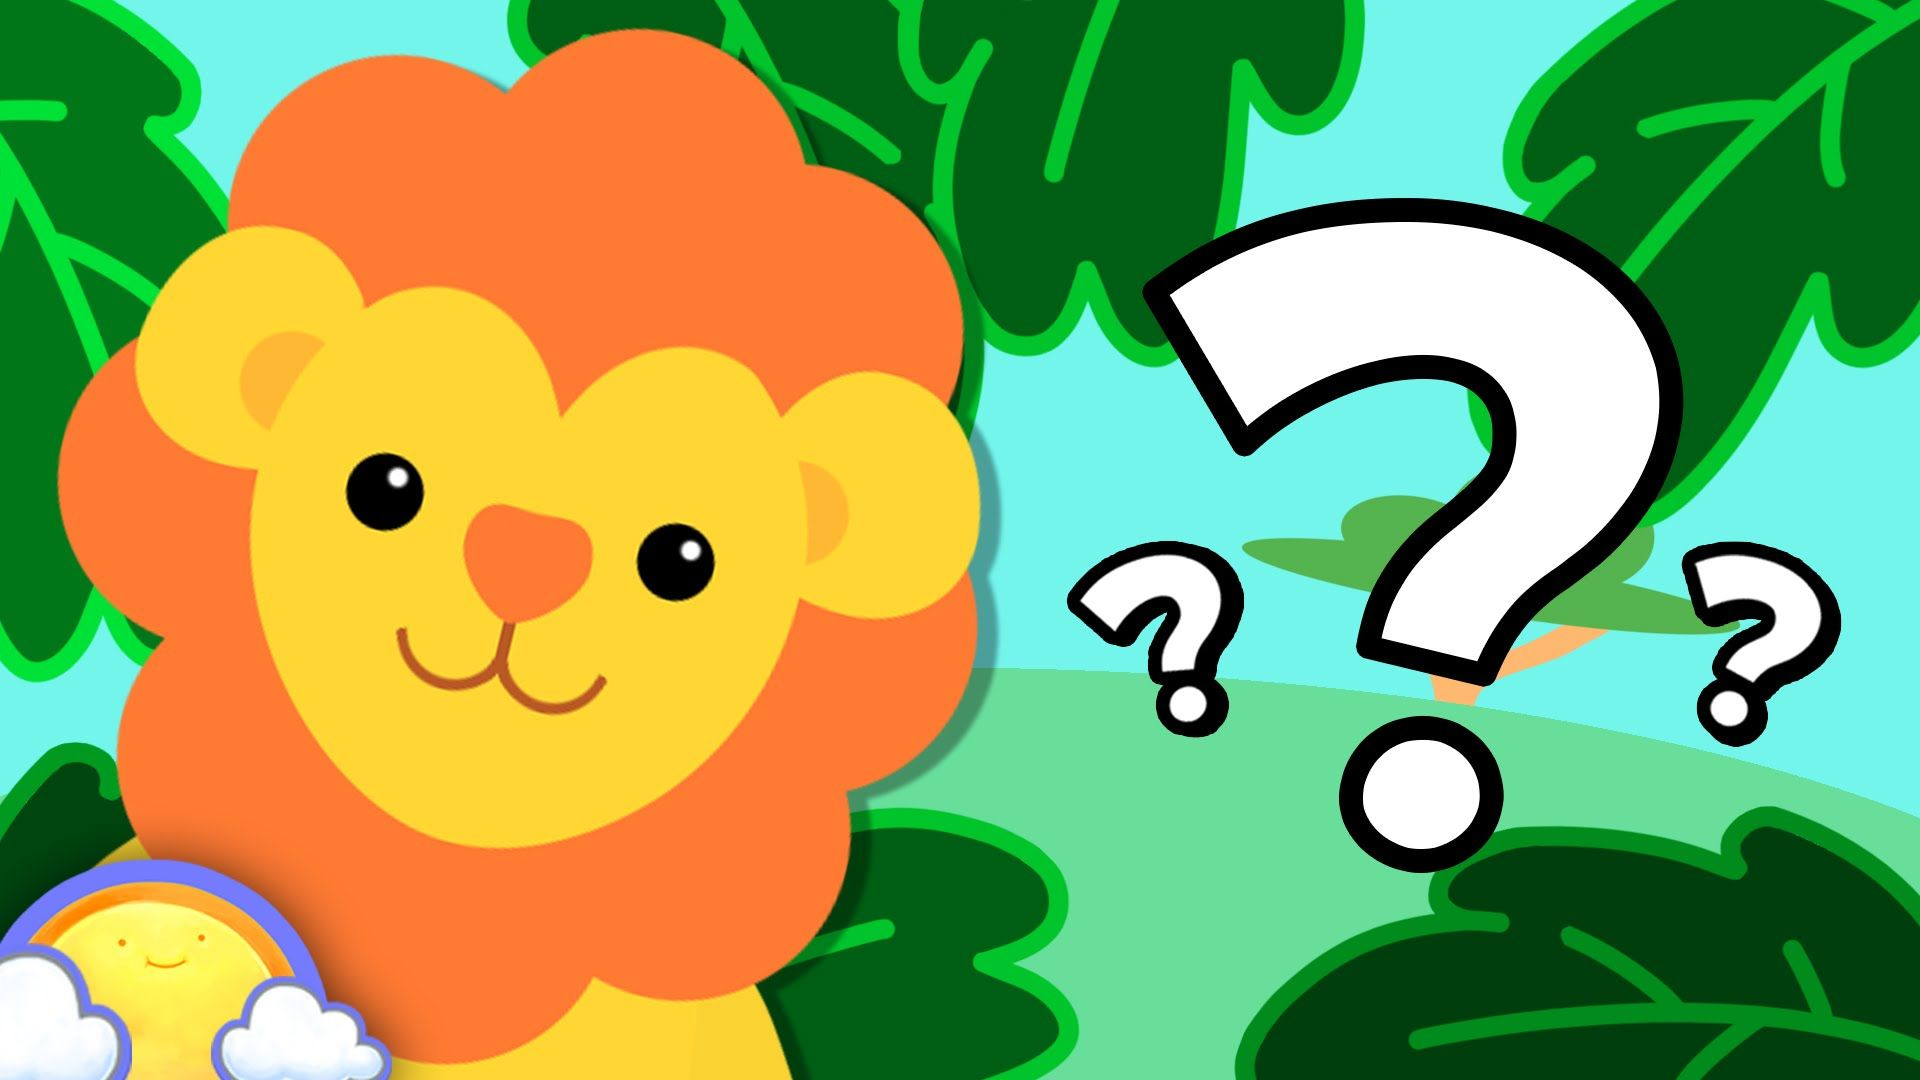 Zoo Animals Game Guessing Game for Kids! CheeriToons